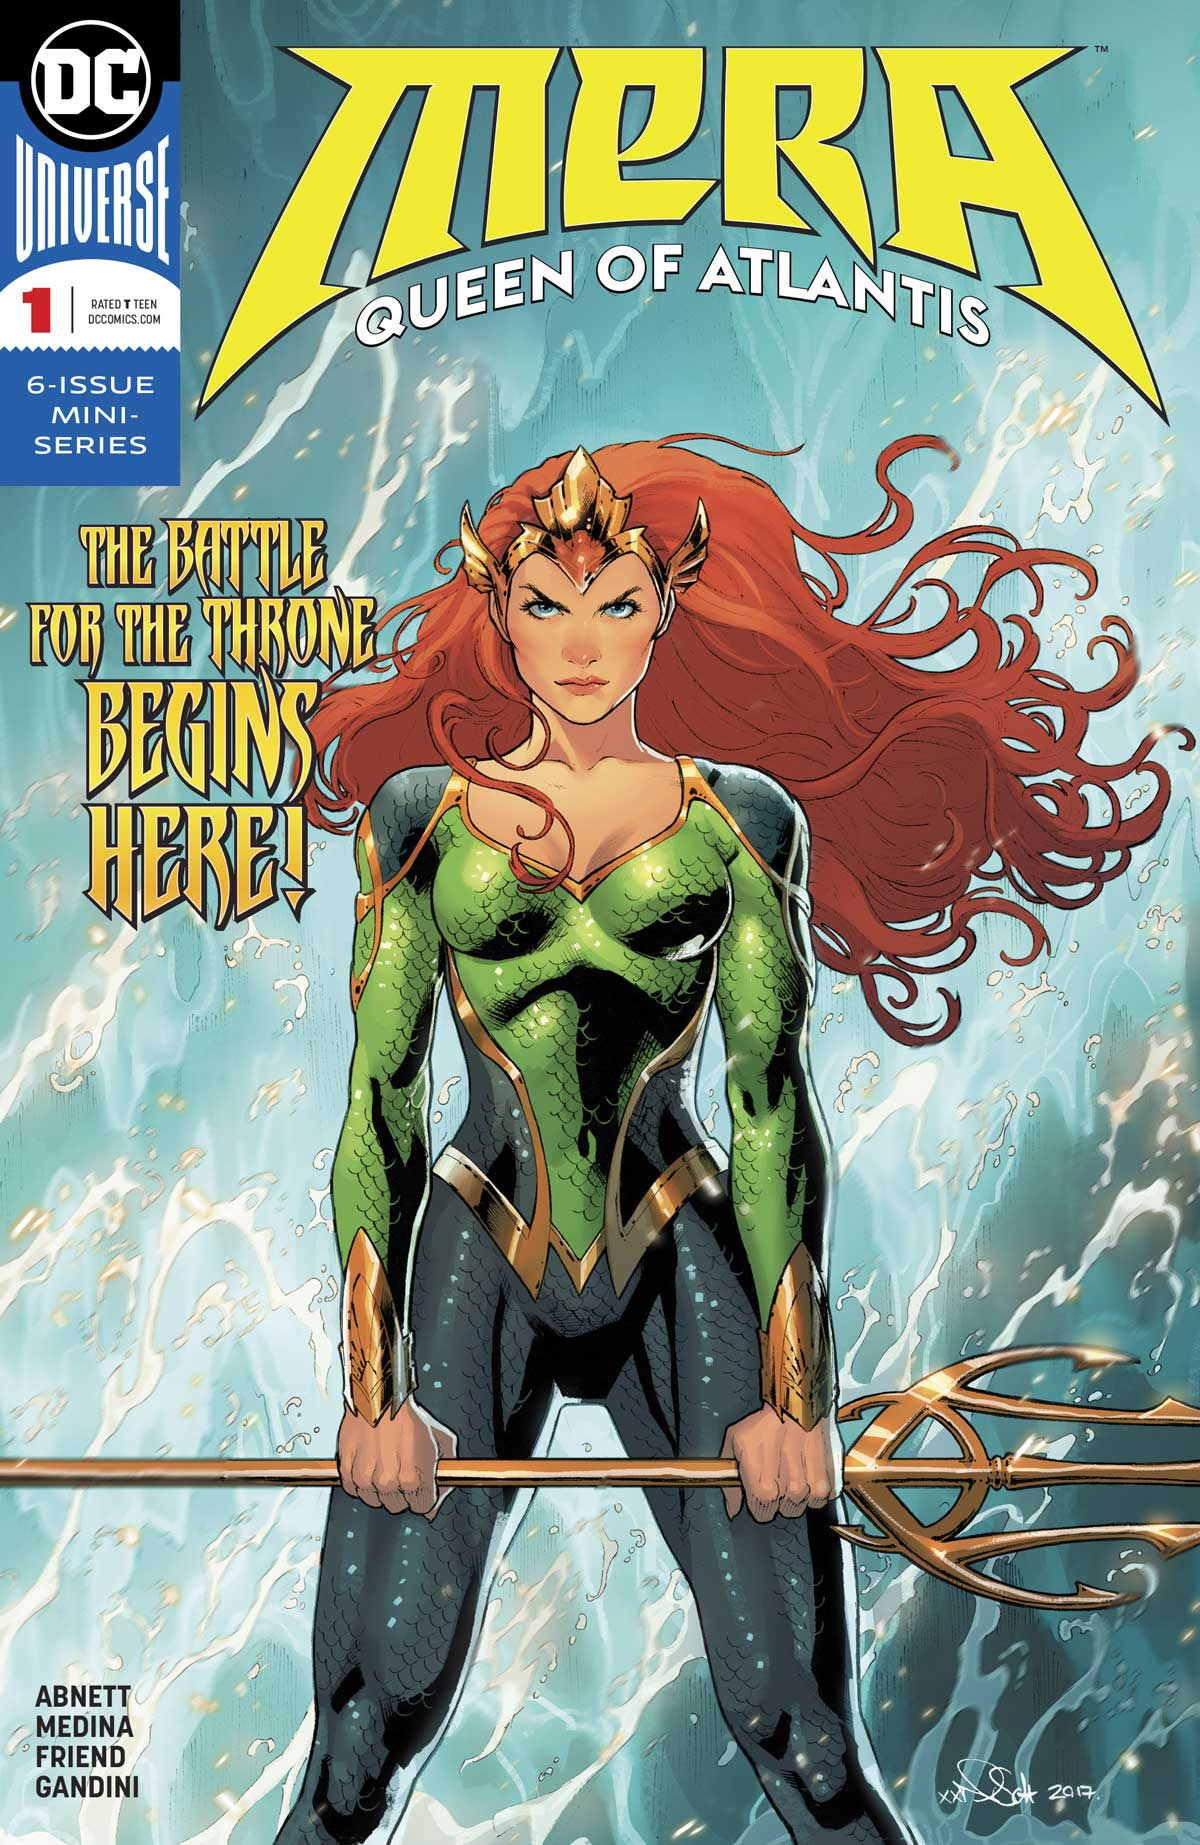 MERA QUEEN OF ATLANTIS #1 cover by Nicola Scott and Romulo Fajardo